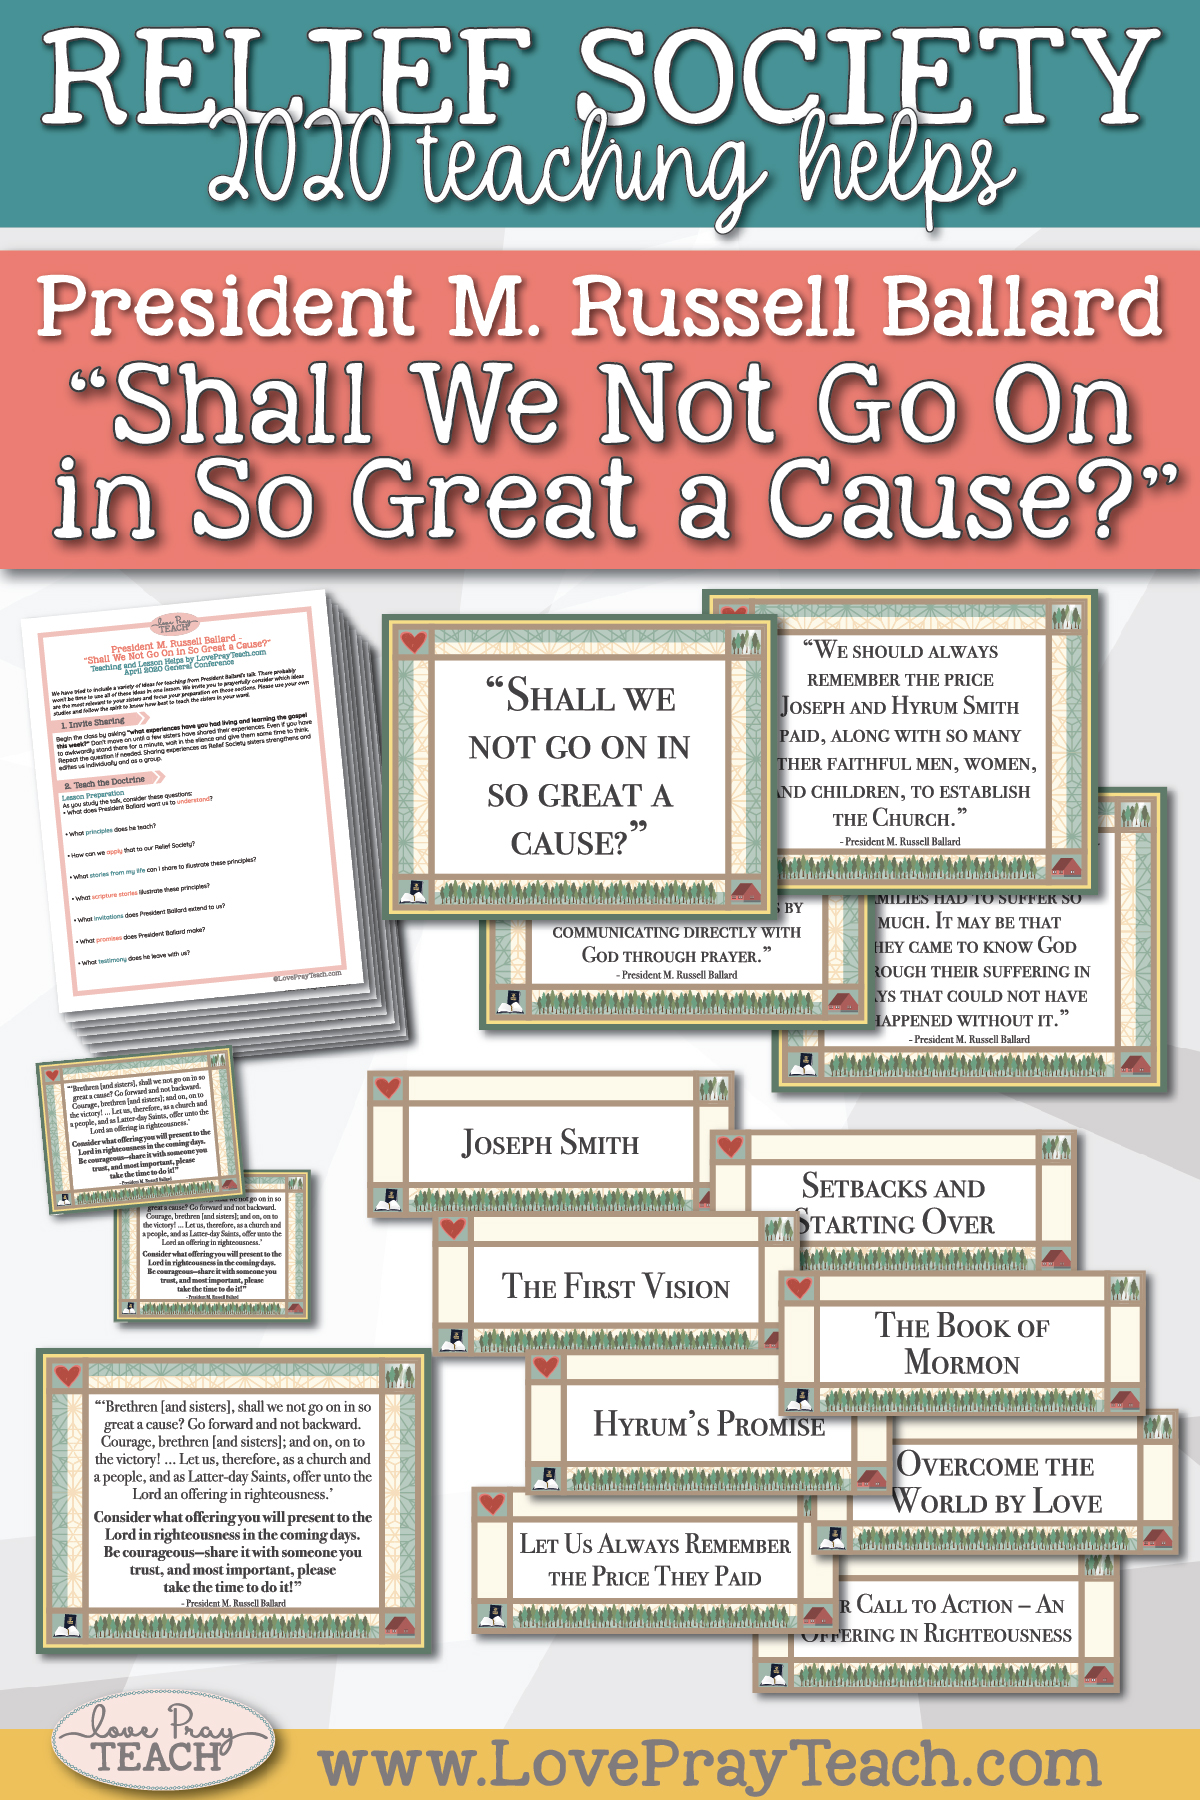 "April 2020 General Conference: President M. Russell Ballard - ""Shall We Not Go On in So Great a Cause?"" Printable Lesson Helps and Handouts for Latter-day Saints"